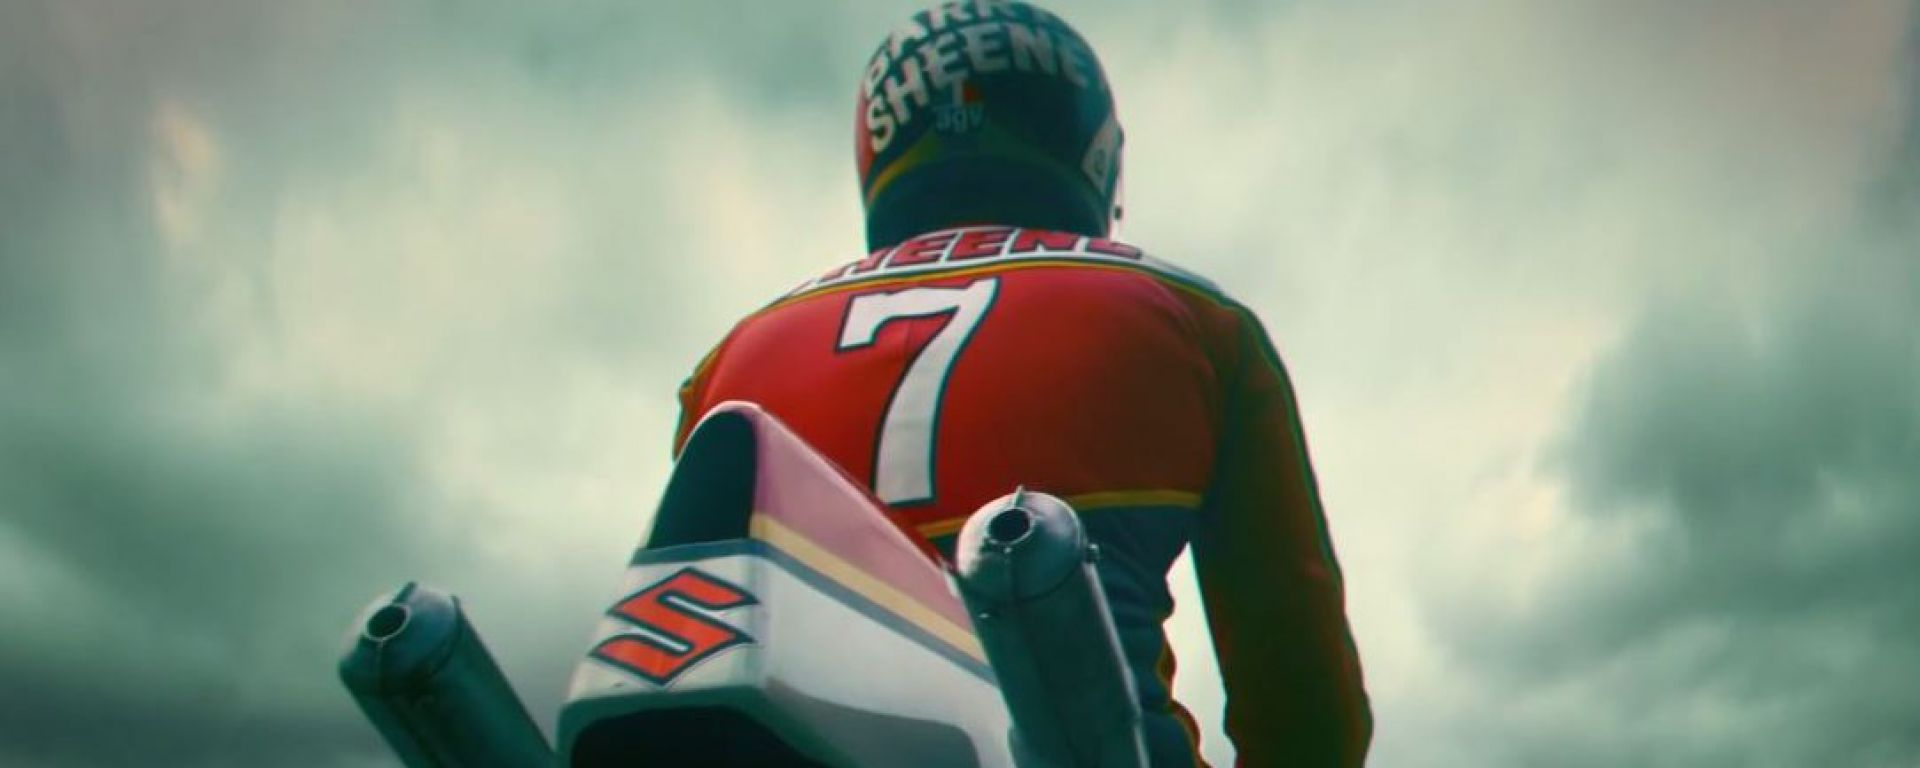 Sheene: ecco il trailer del film